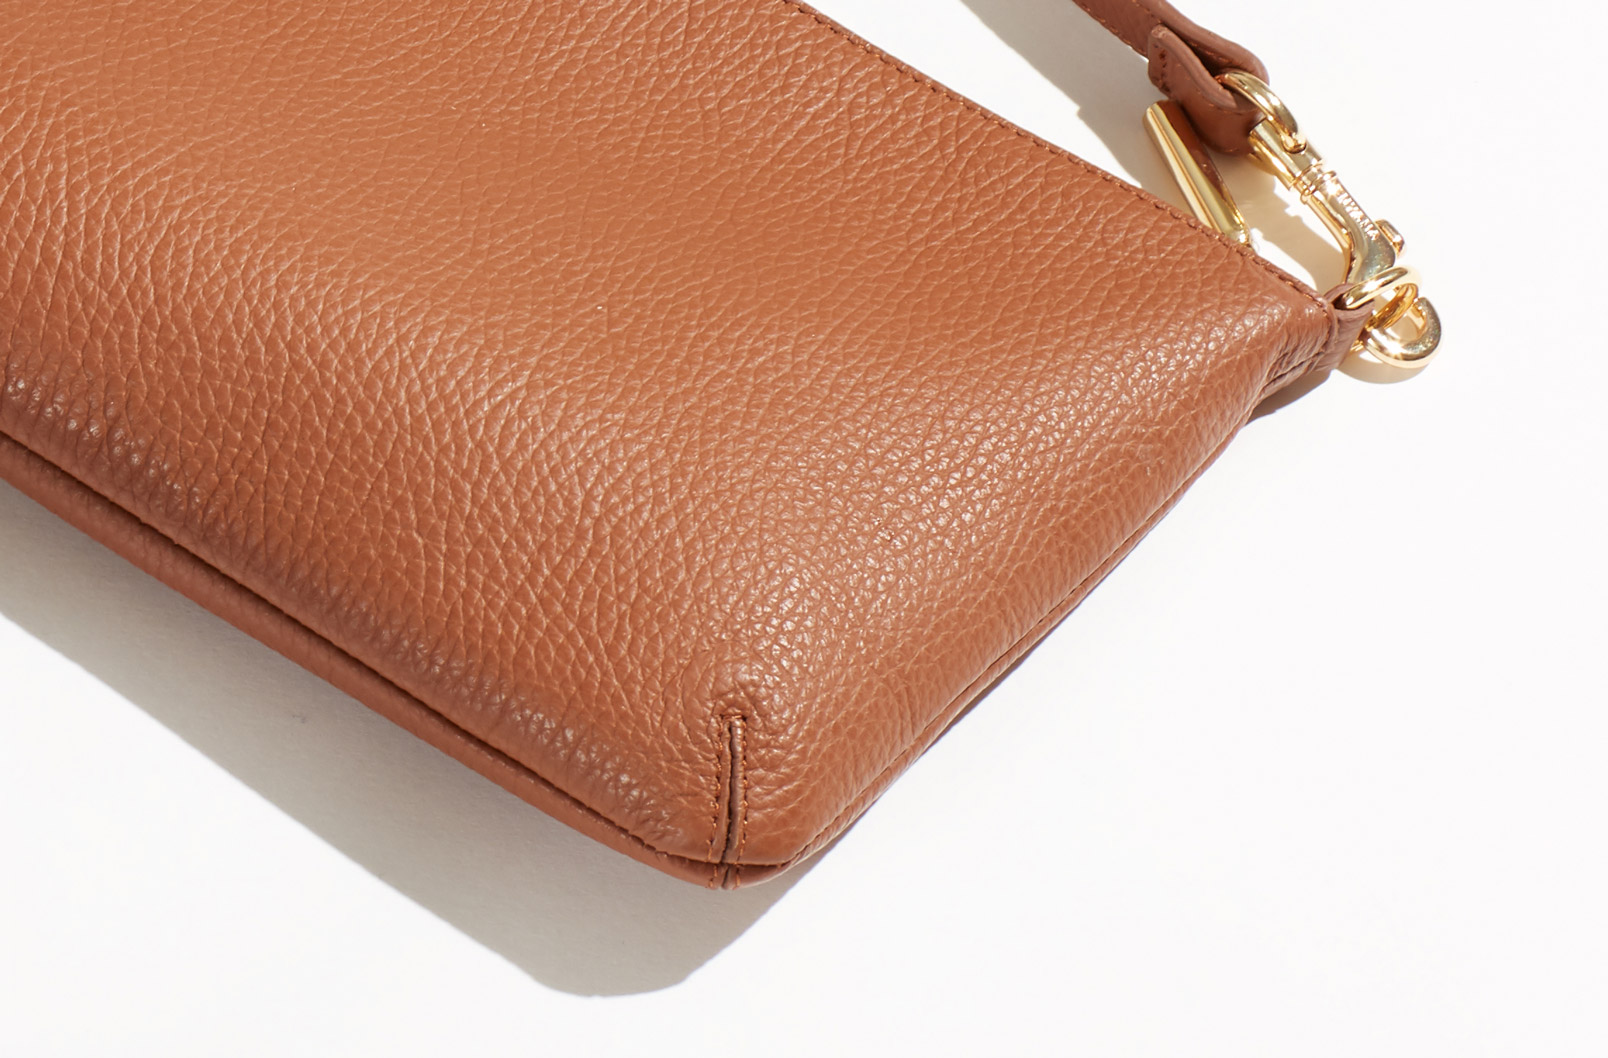 Detail shot showing seam details of Curved Crossbody pouch